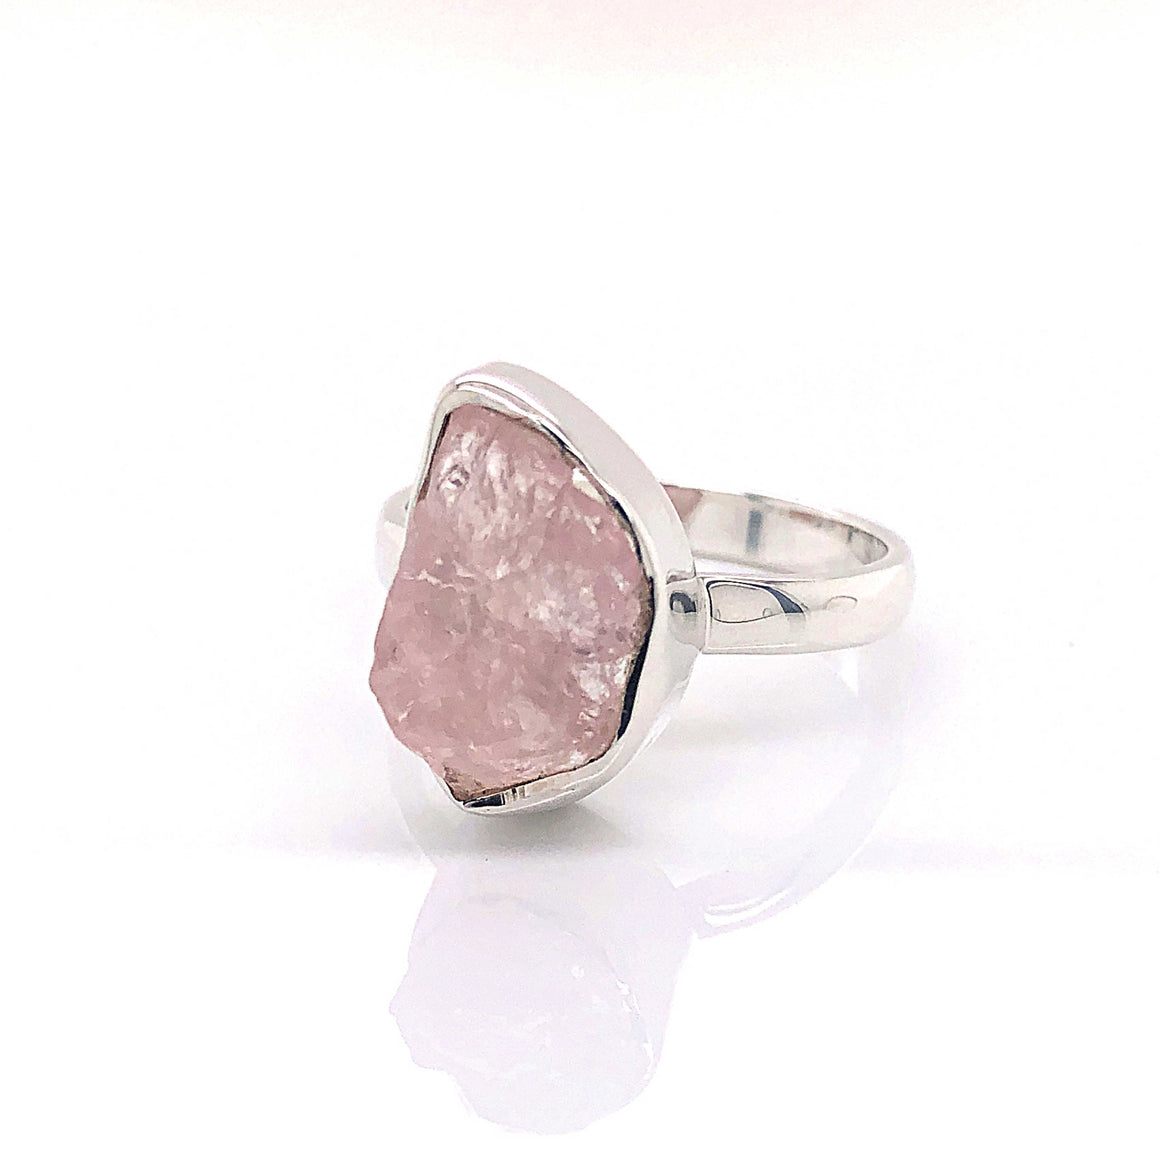 Morganite Gemstone Ring